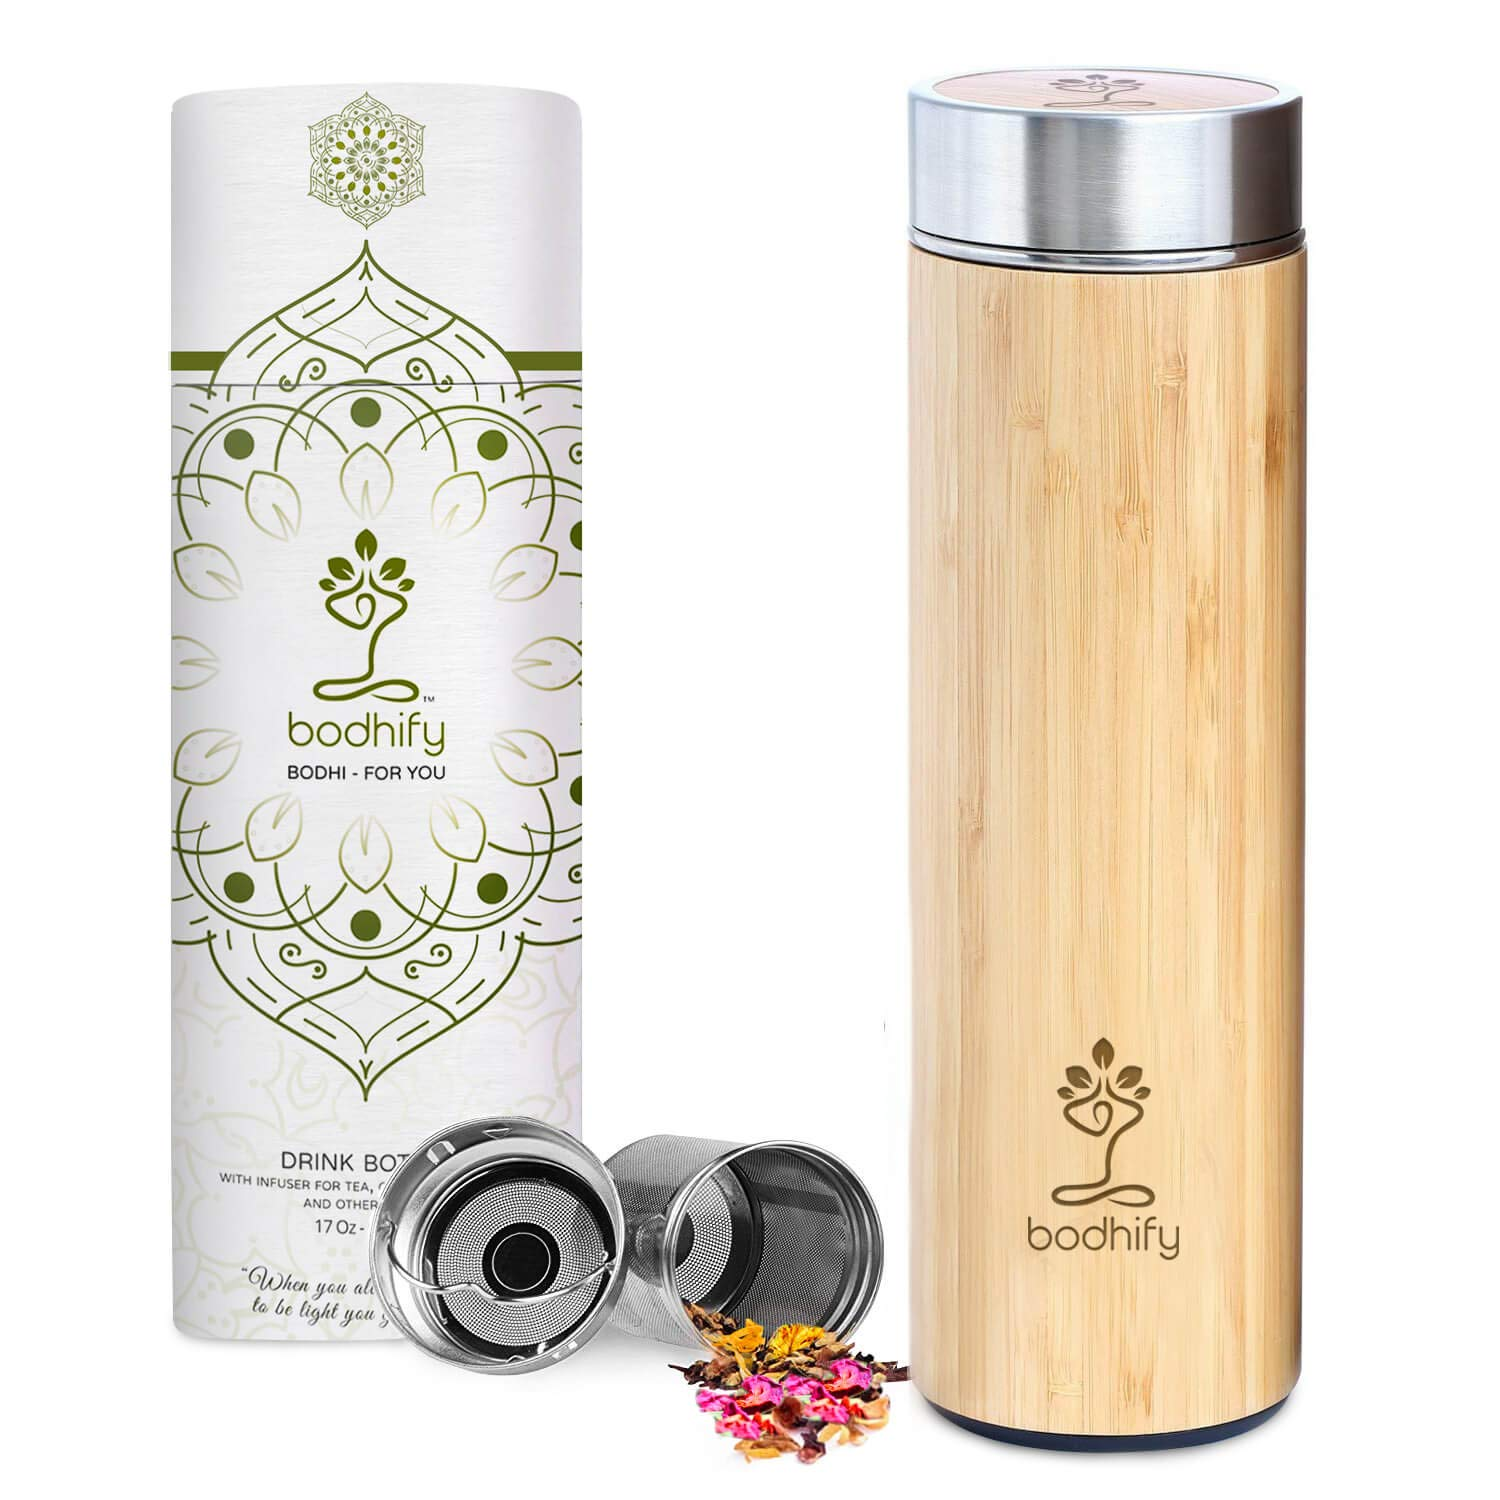 Original Bamboo Tumbler Tea Infuser with Strainer 17oz Ideal Gift for Tea Lovers